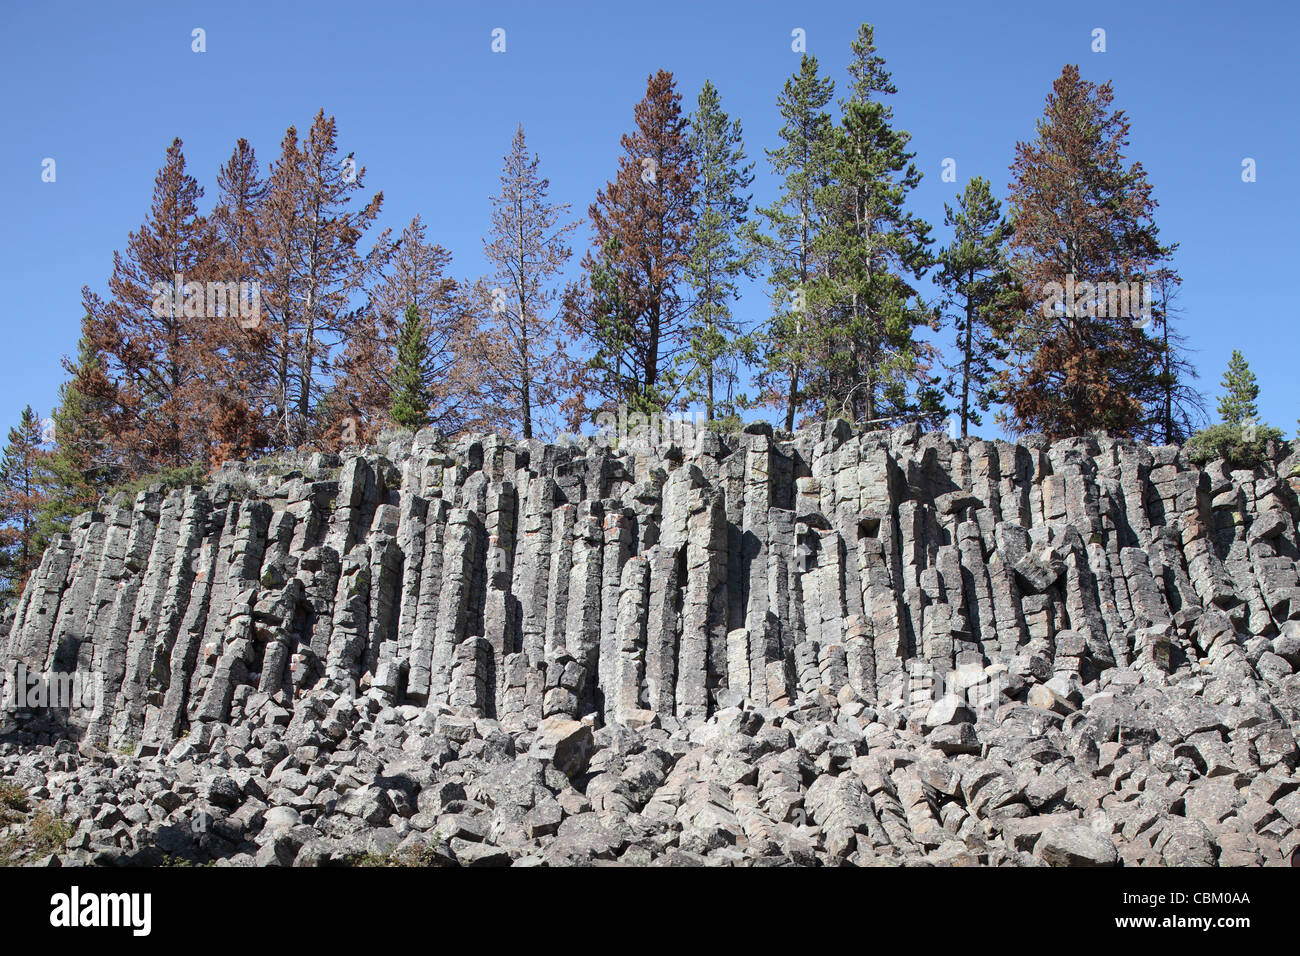 Basalt Columns formed by cooling lava, Sheepeater Cliffs, Yellowstone Caldera, Yellowstone National Park, Wyoming. - Stock Image